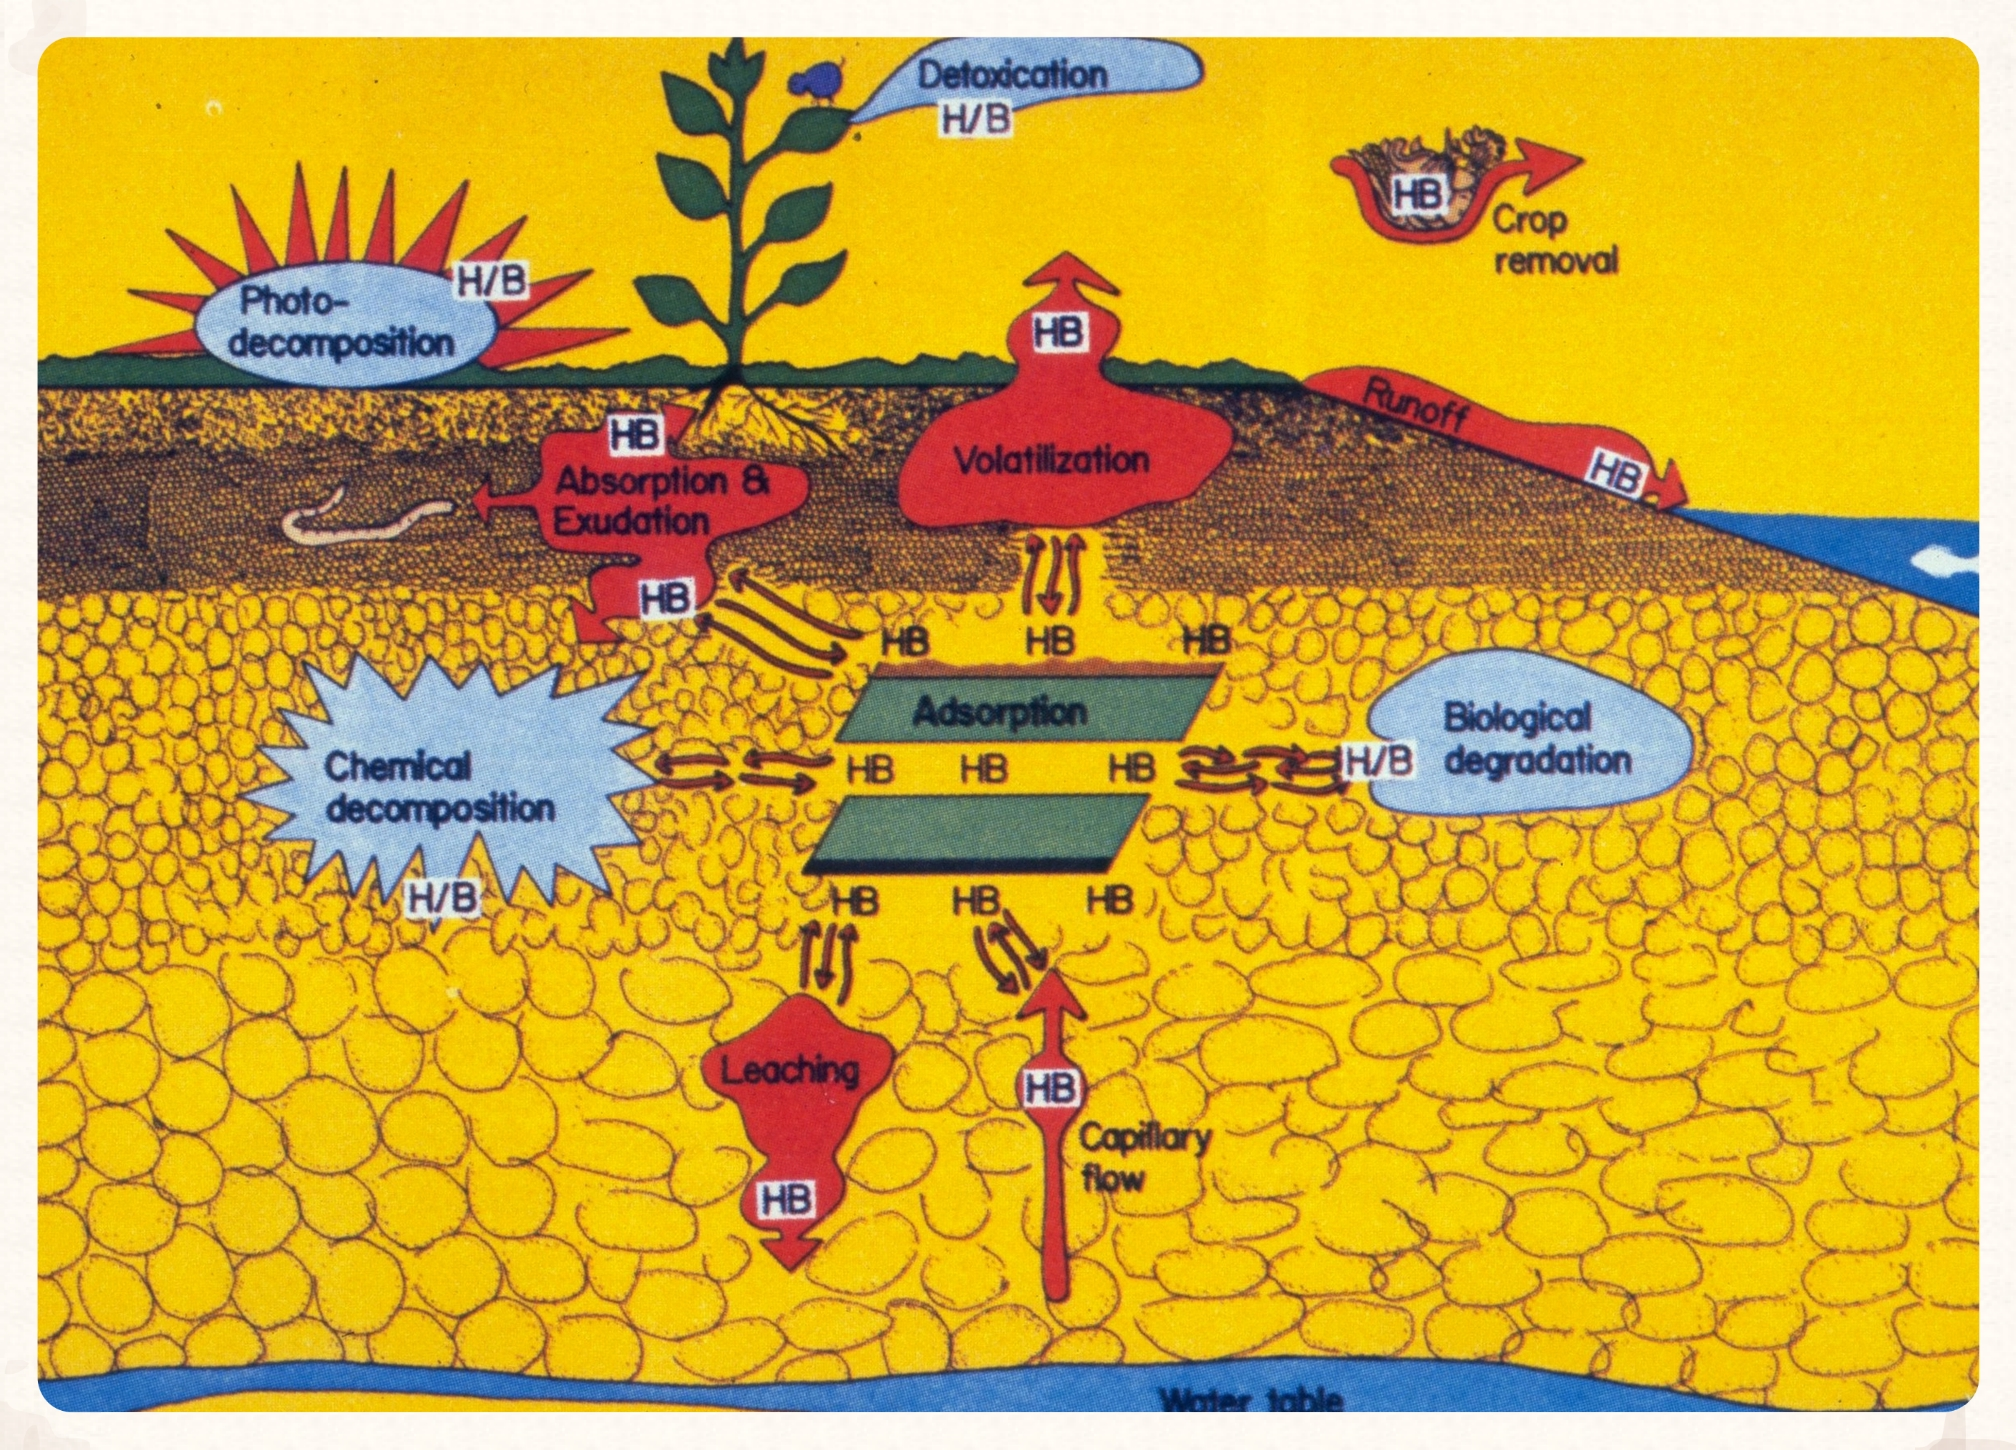 Figure 1.  Herbicides dissipate in the environment through absorption and detoxification by plants, volatilization, photodecomposition, and other degradation and transport processes. HB denotes herbicide.  (USDA Forest Service - Region 8 - Southern Archive, USDA Forest Service, Bugwood.org)